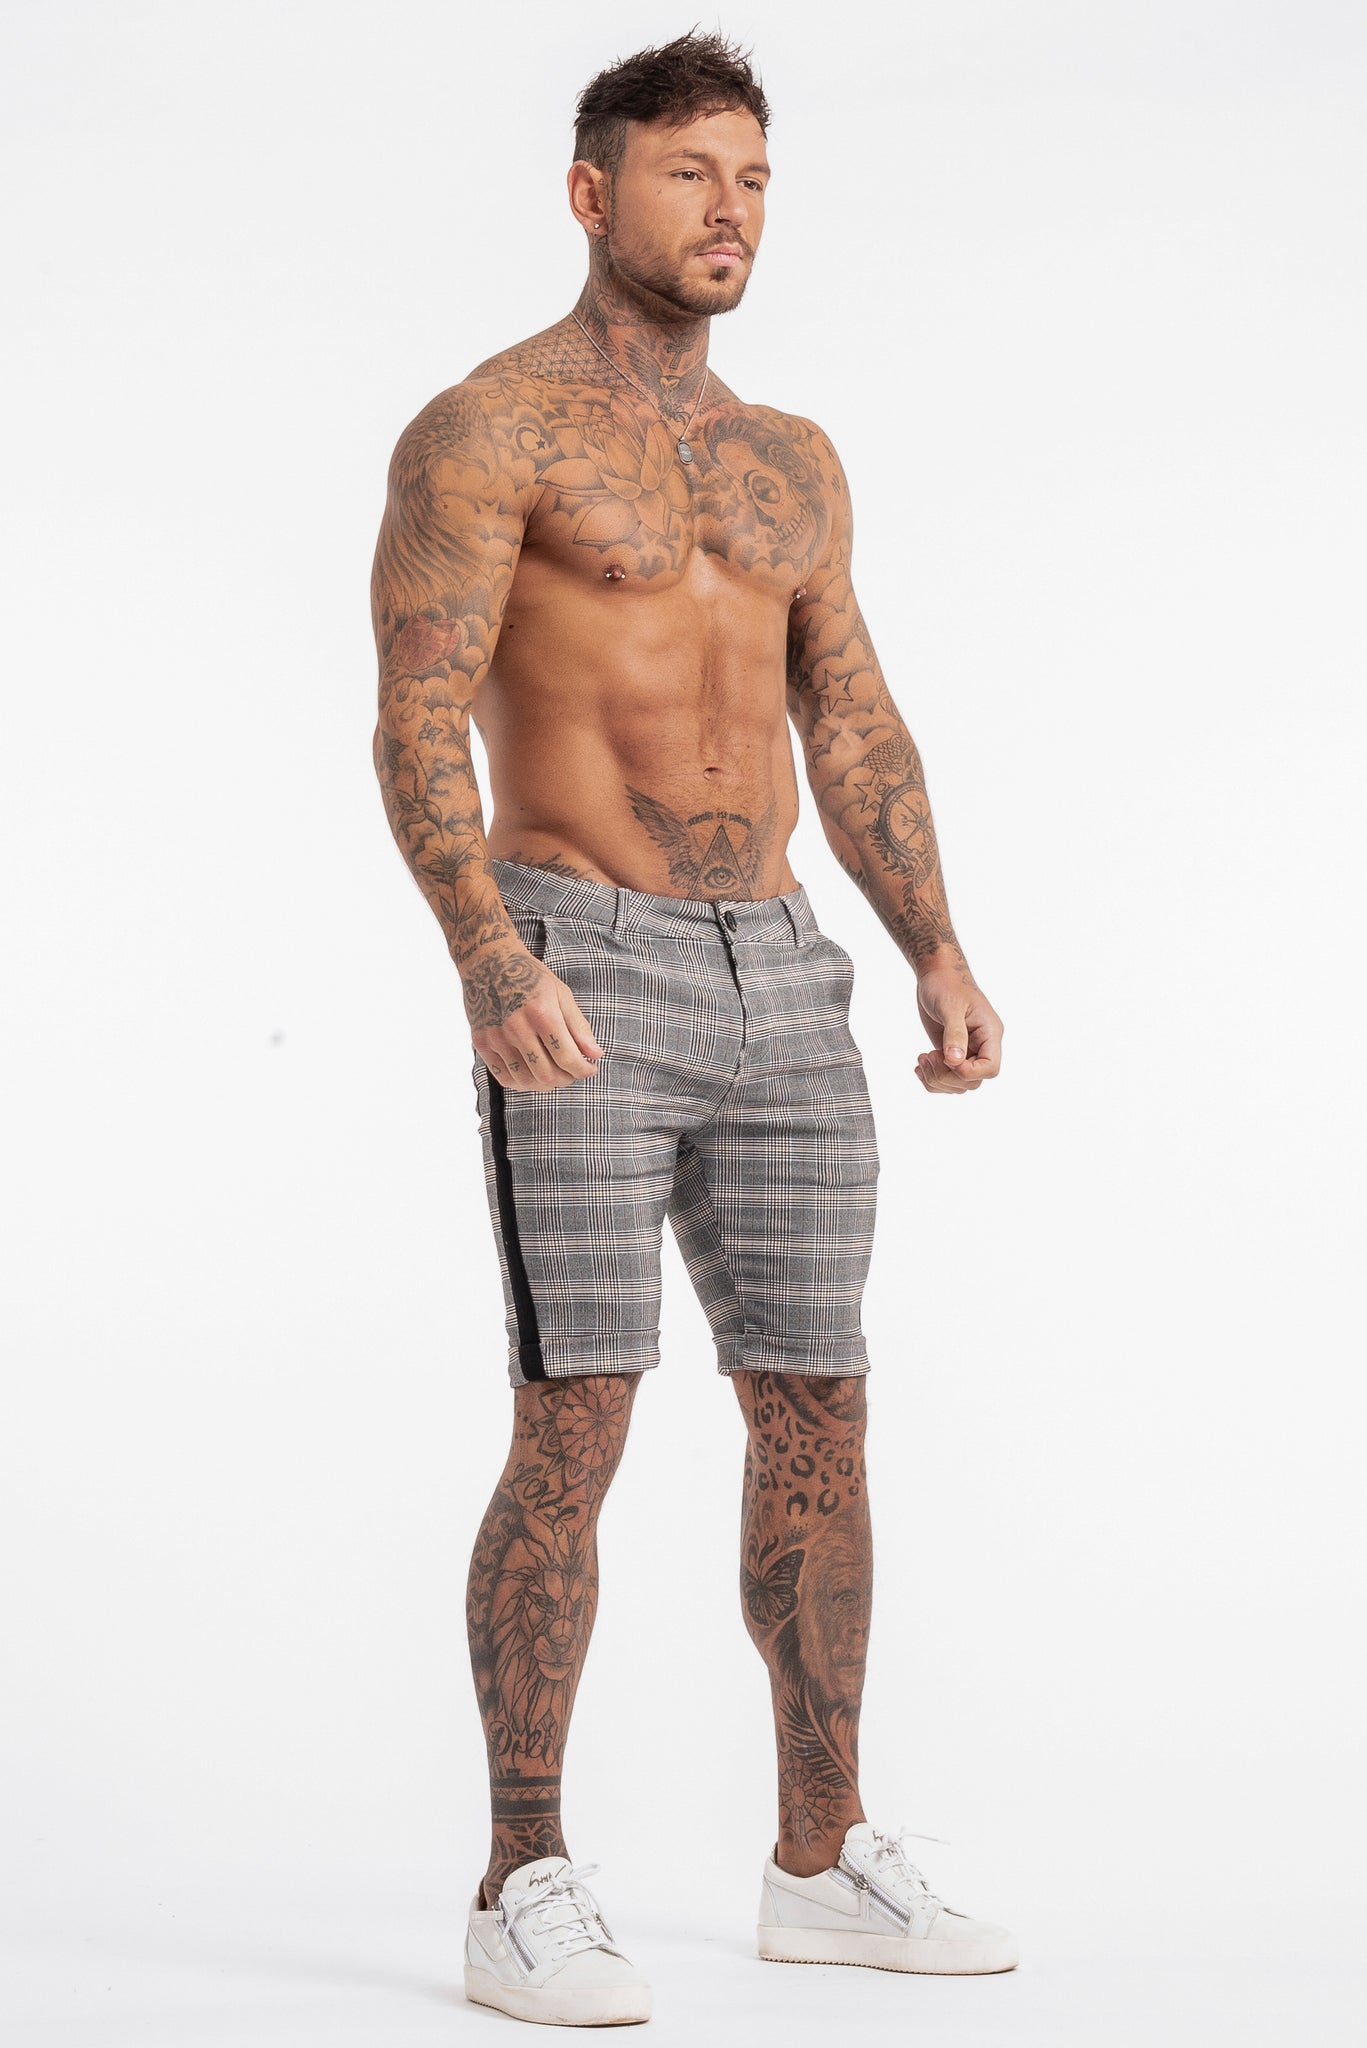 THE VIERA SHORTS - GREY/BLACK